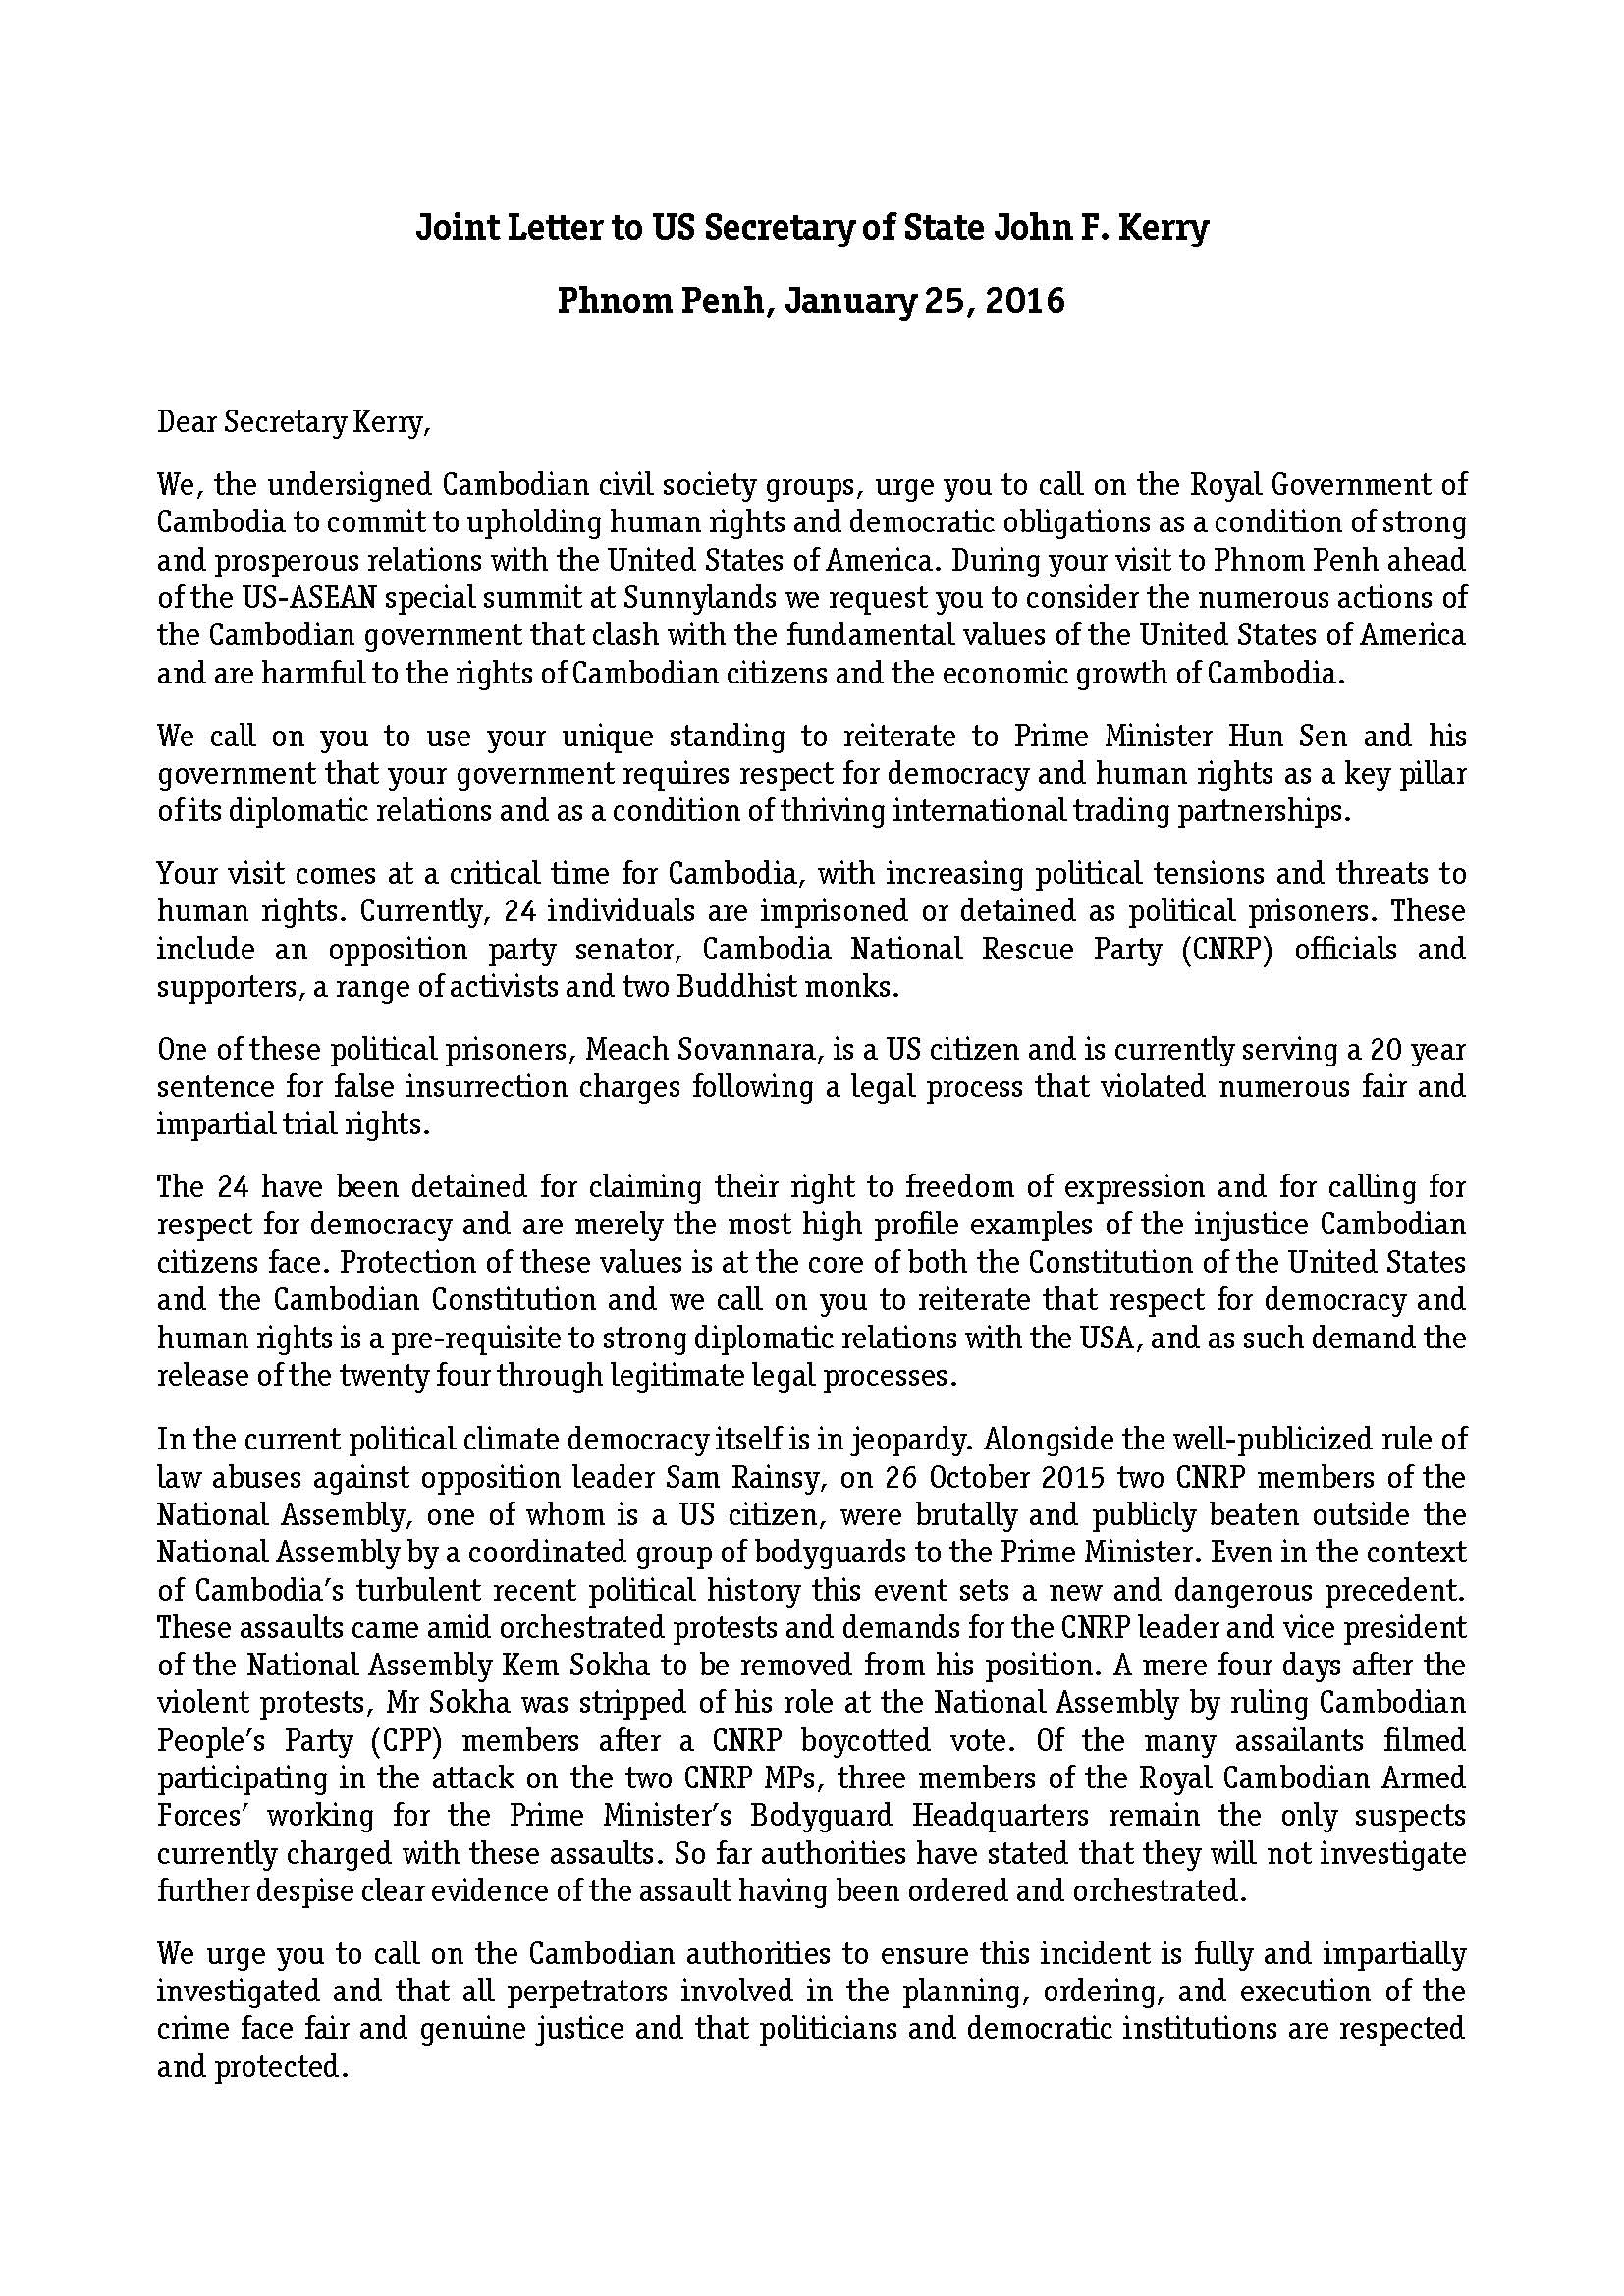 Kerry Phnom Penh letter endorsed by Union_Community and NGO_Page_1